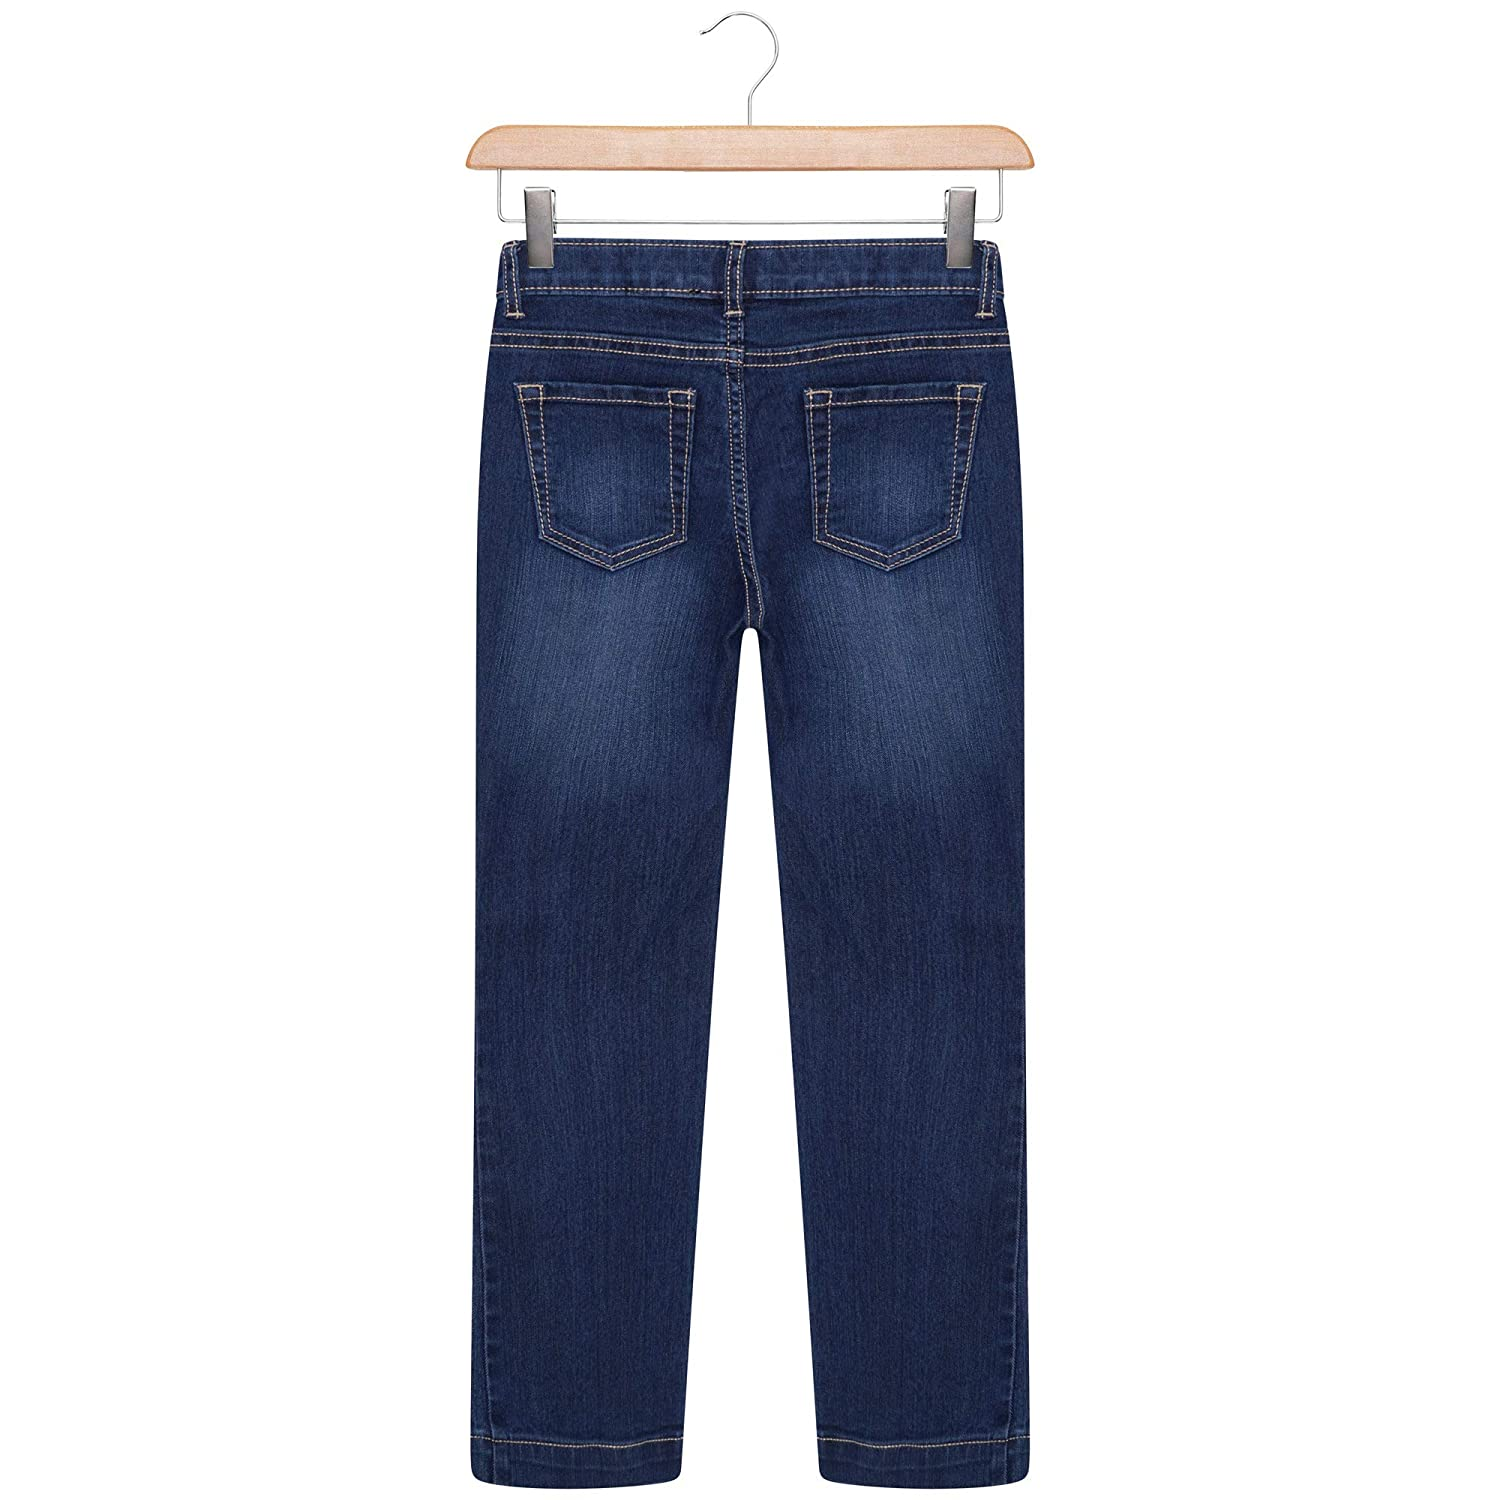 Off The High Street Girls Bootcut Jeans Flared Blue Denim 5-15 Years